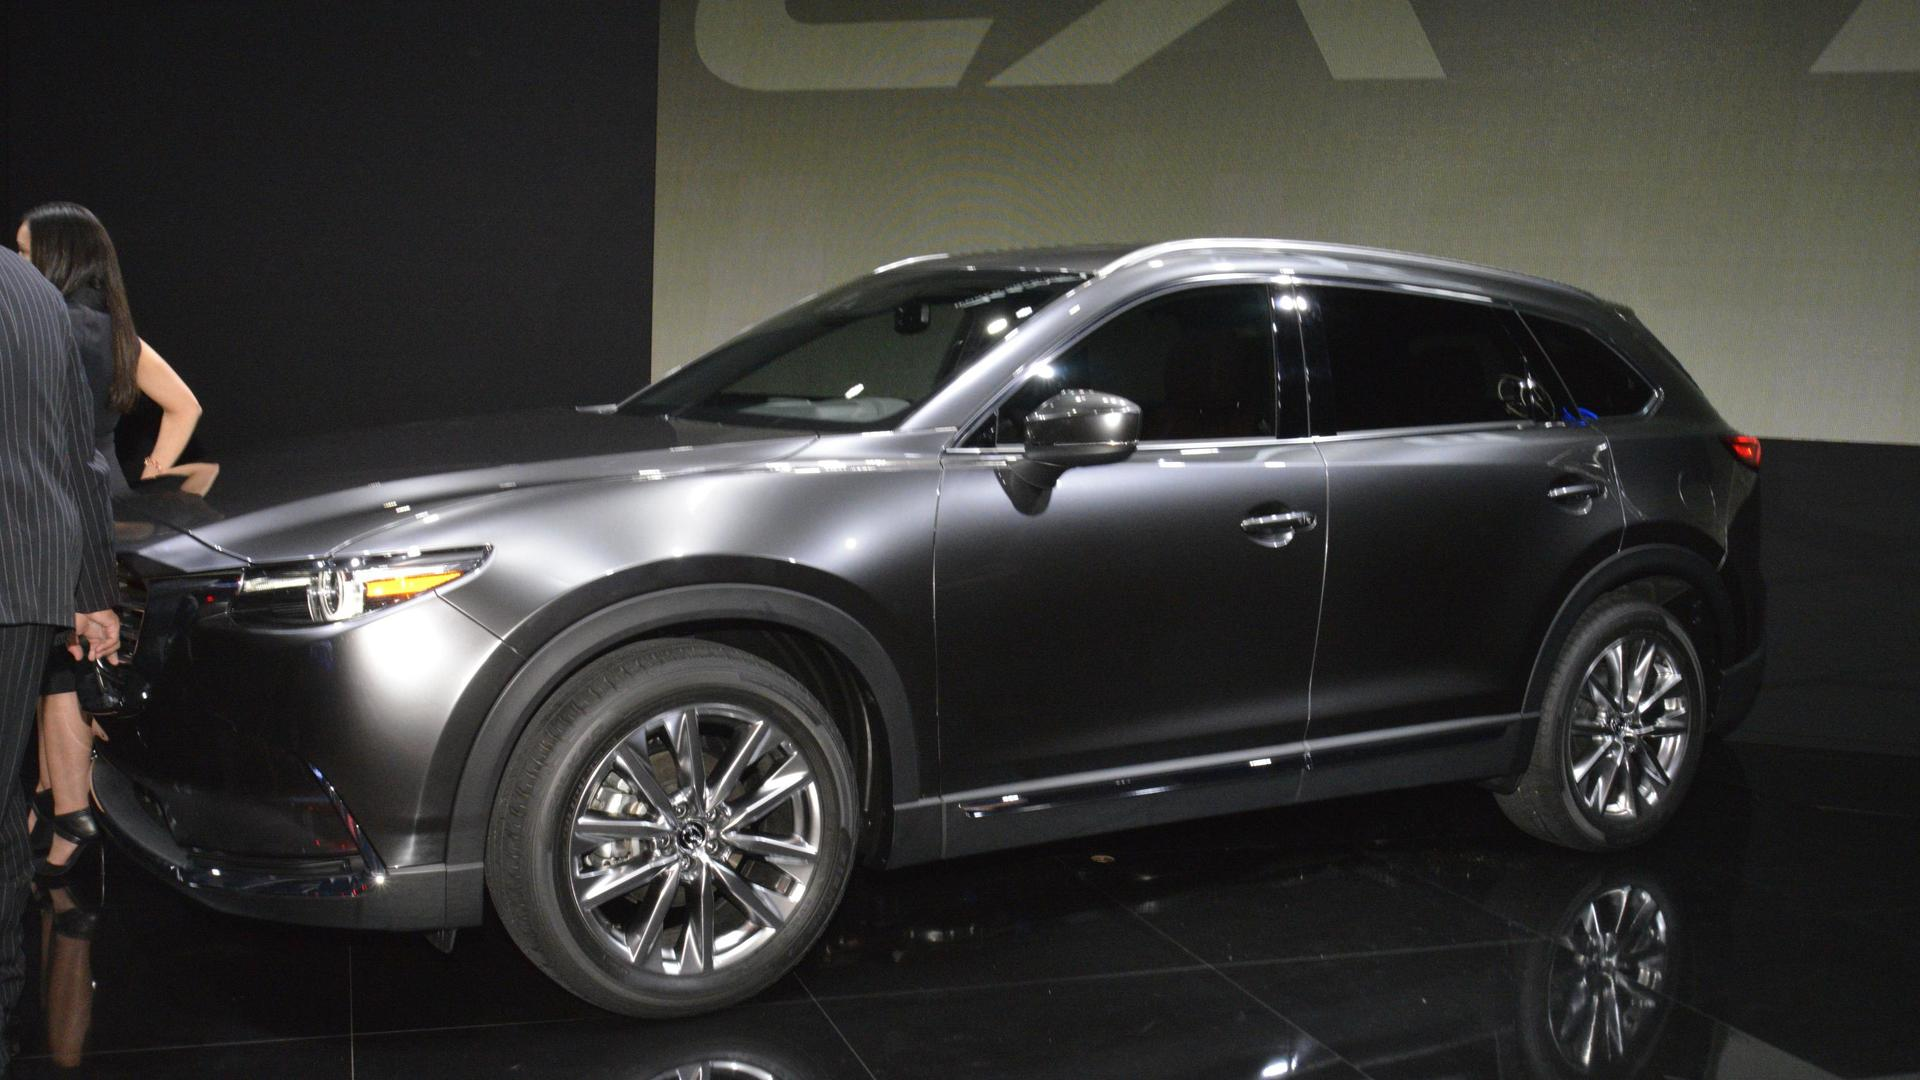 Mazda Cx 9 Europe >> Mazda Cx 9 Could Come To Europe Needs Diesel